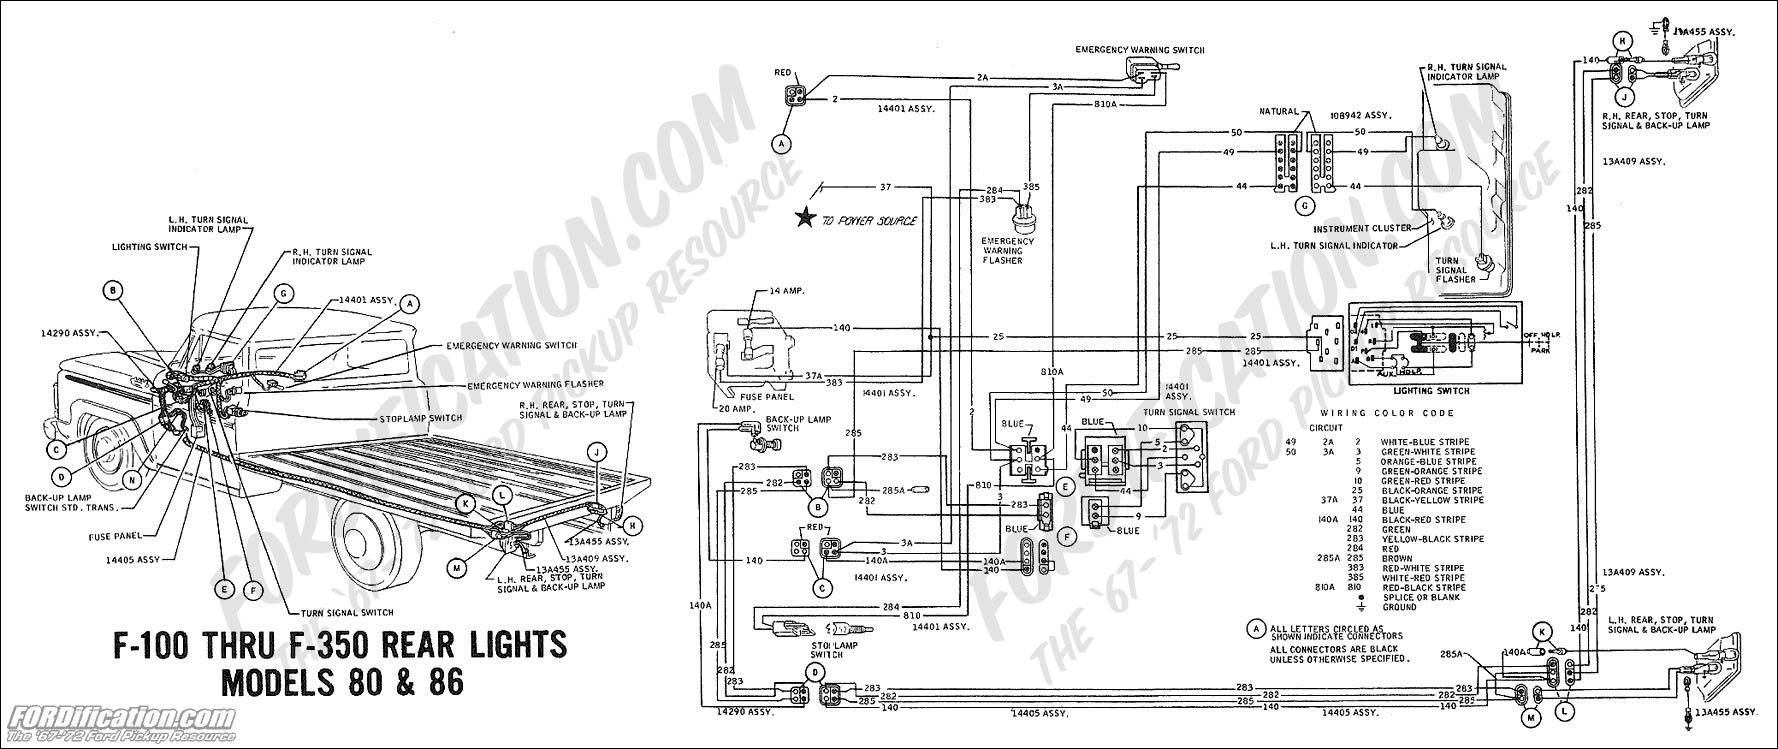 ford f dash wiring ford truck technical drawings and schematics section h wiring 1969 f 100 thru f 350 rear